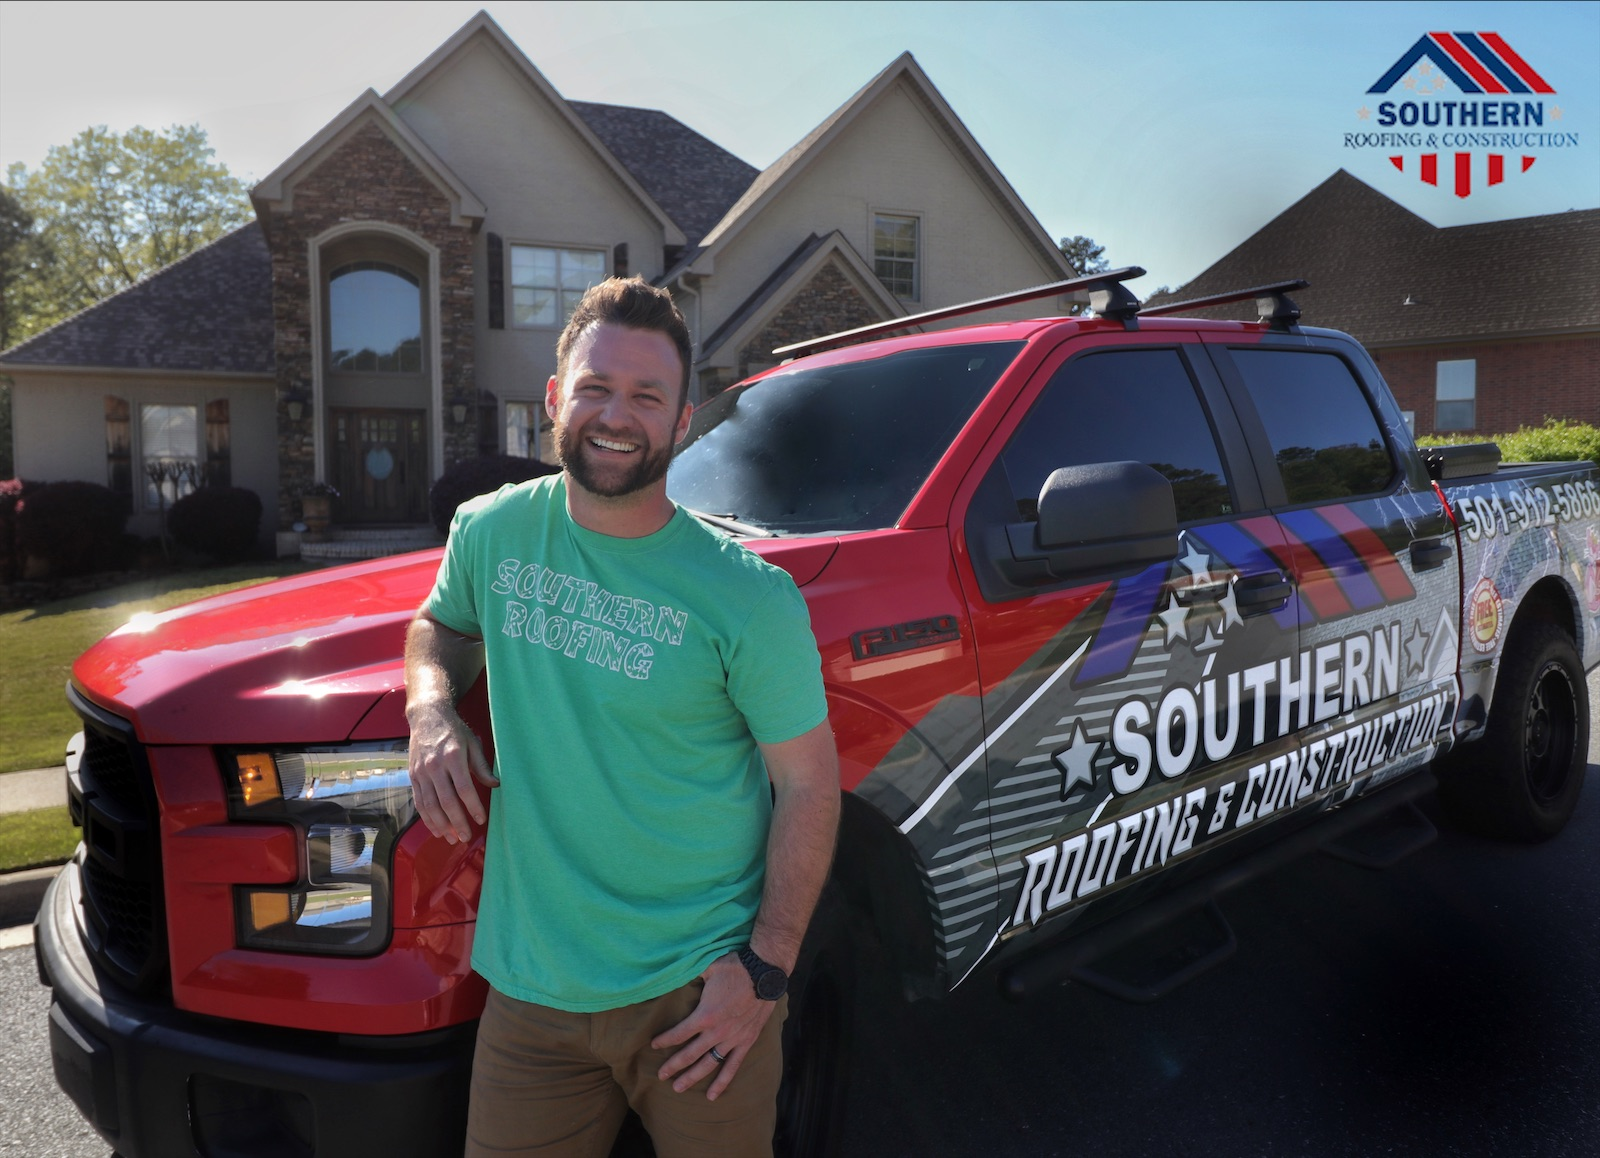 Owner of Roofing company in Little Rock, AR